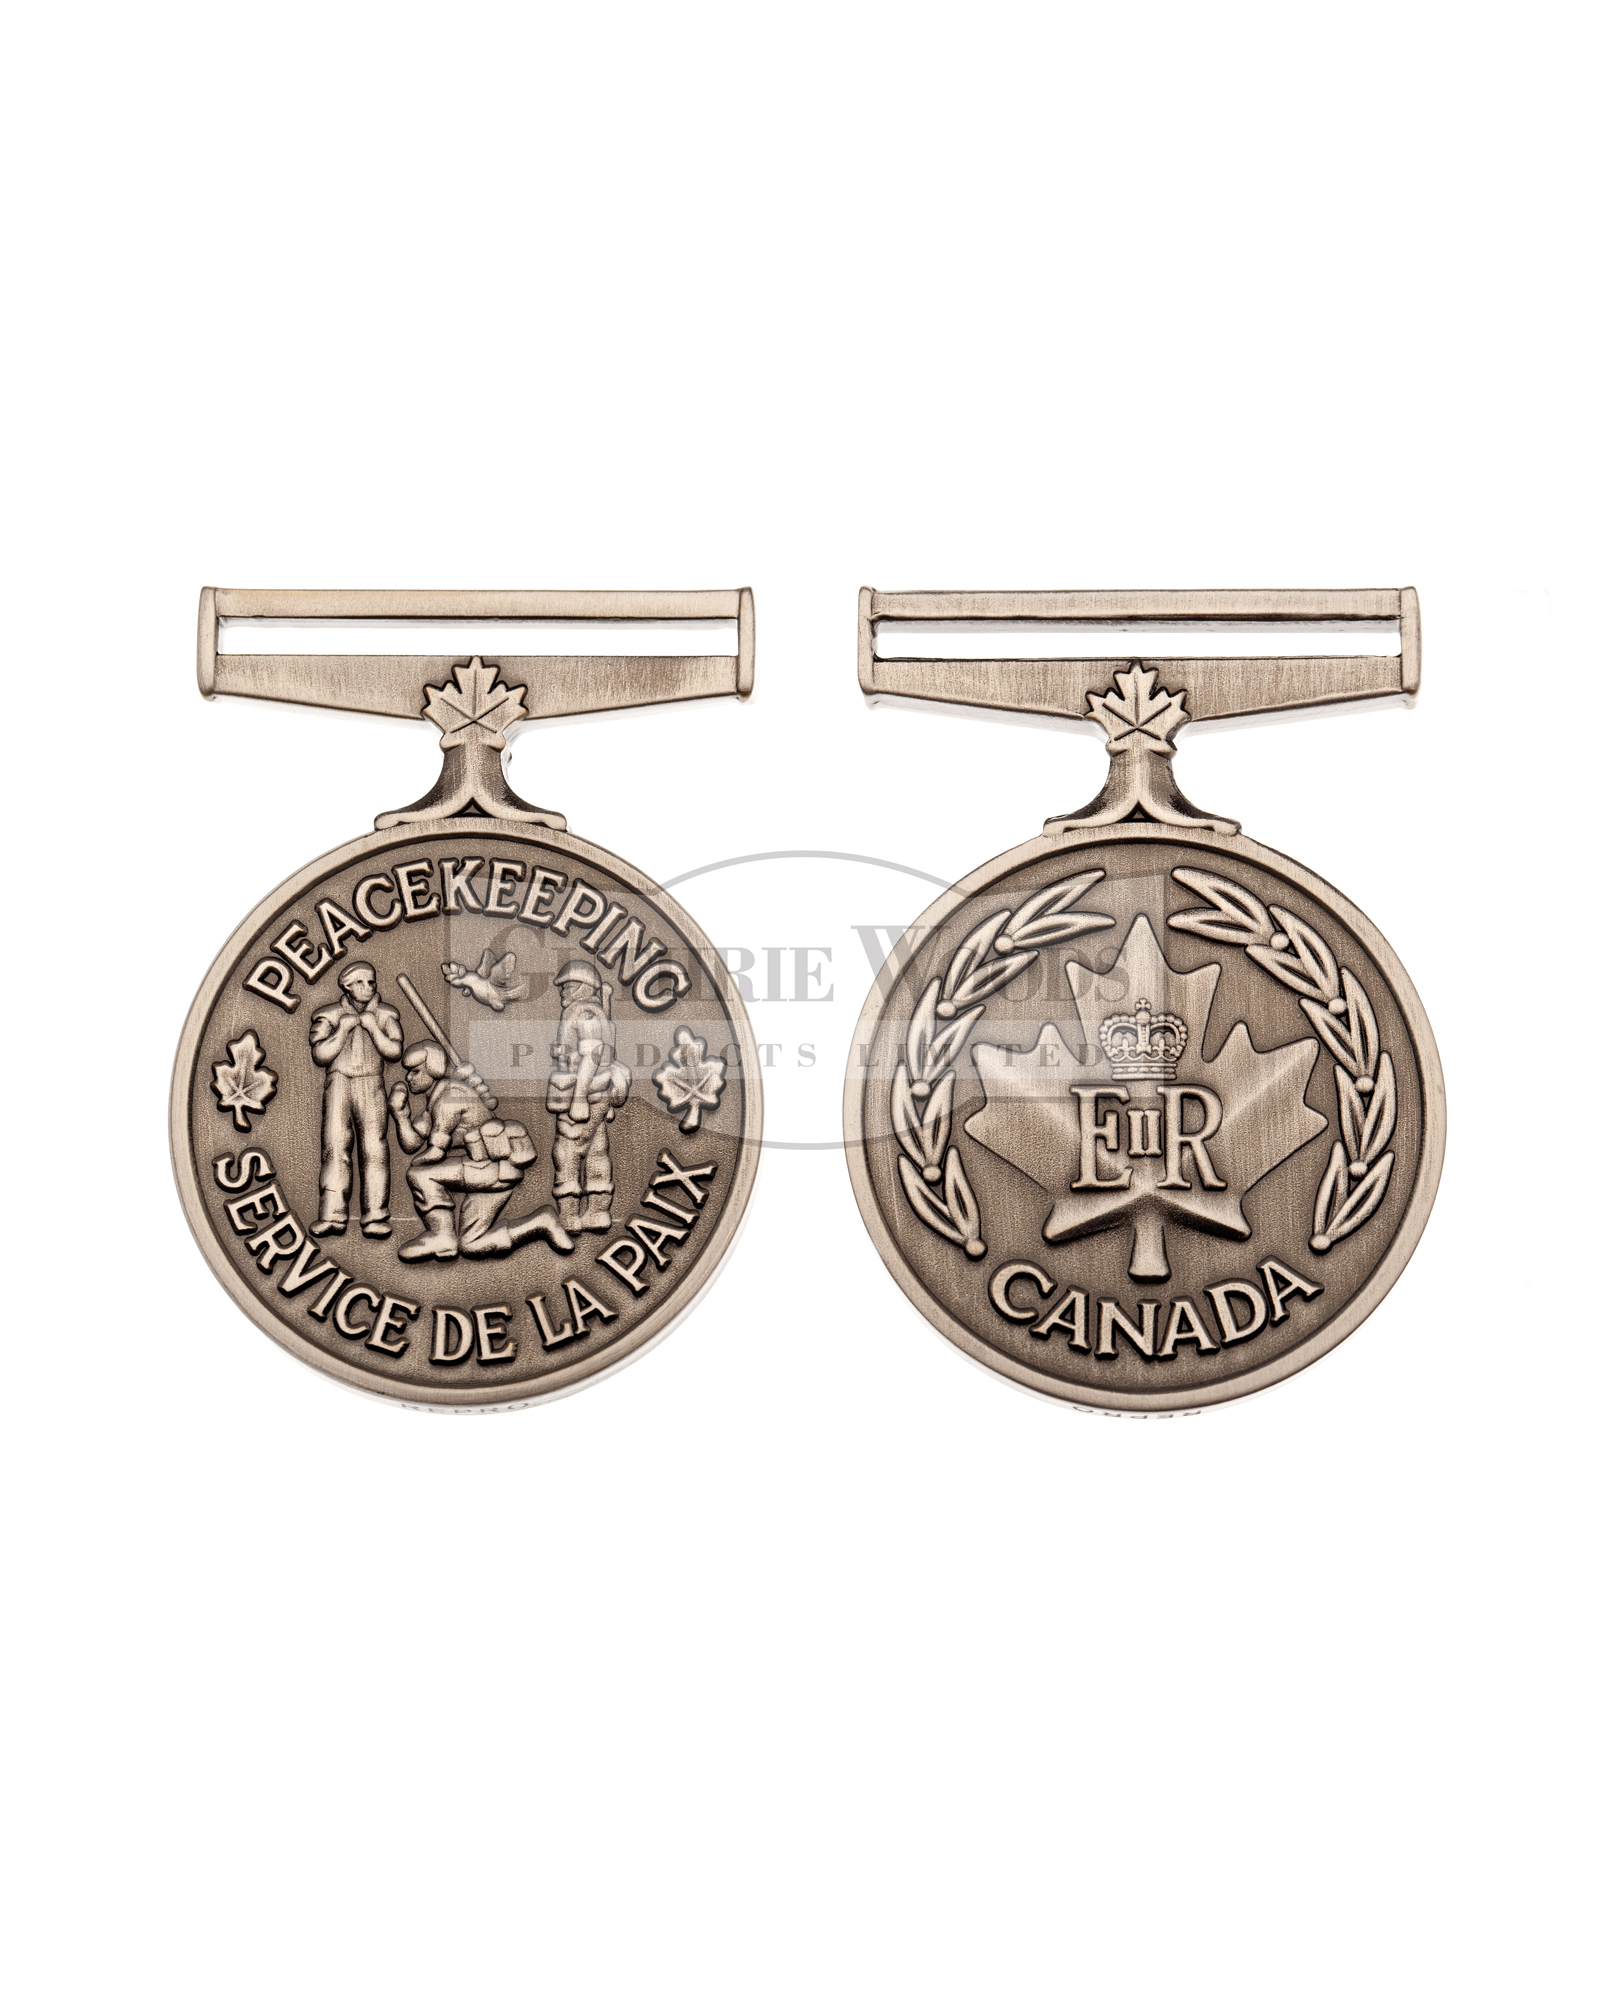 Canadian Peacekeeping Service (CPSM) - Medal